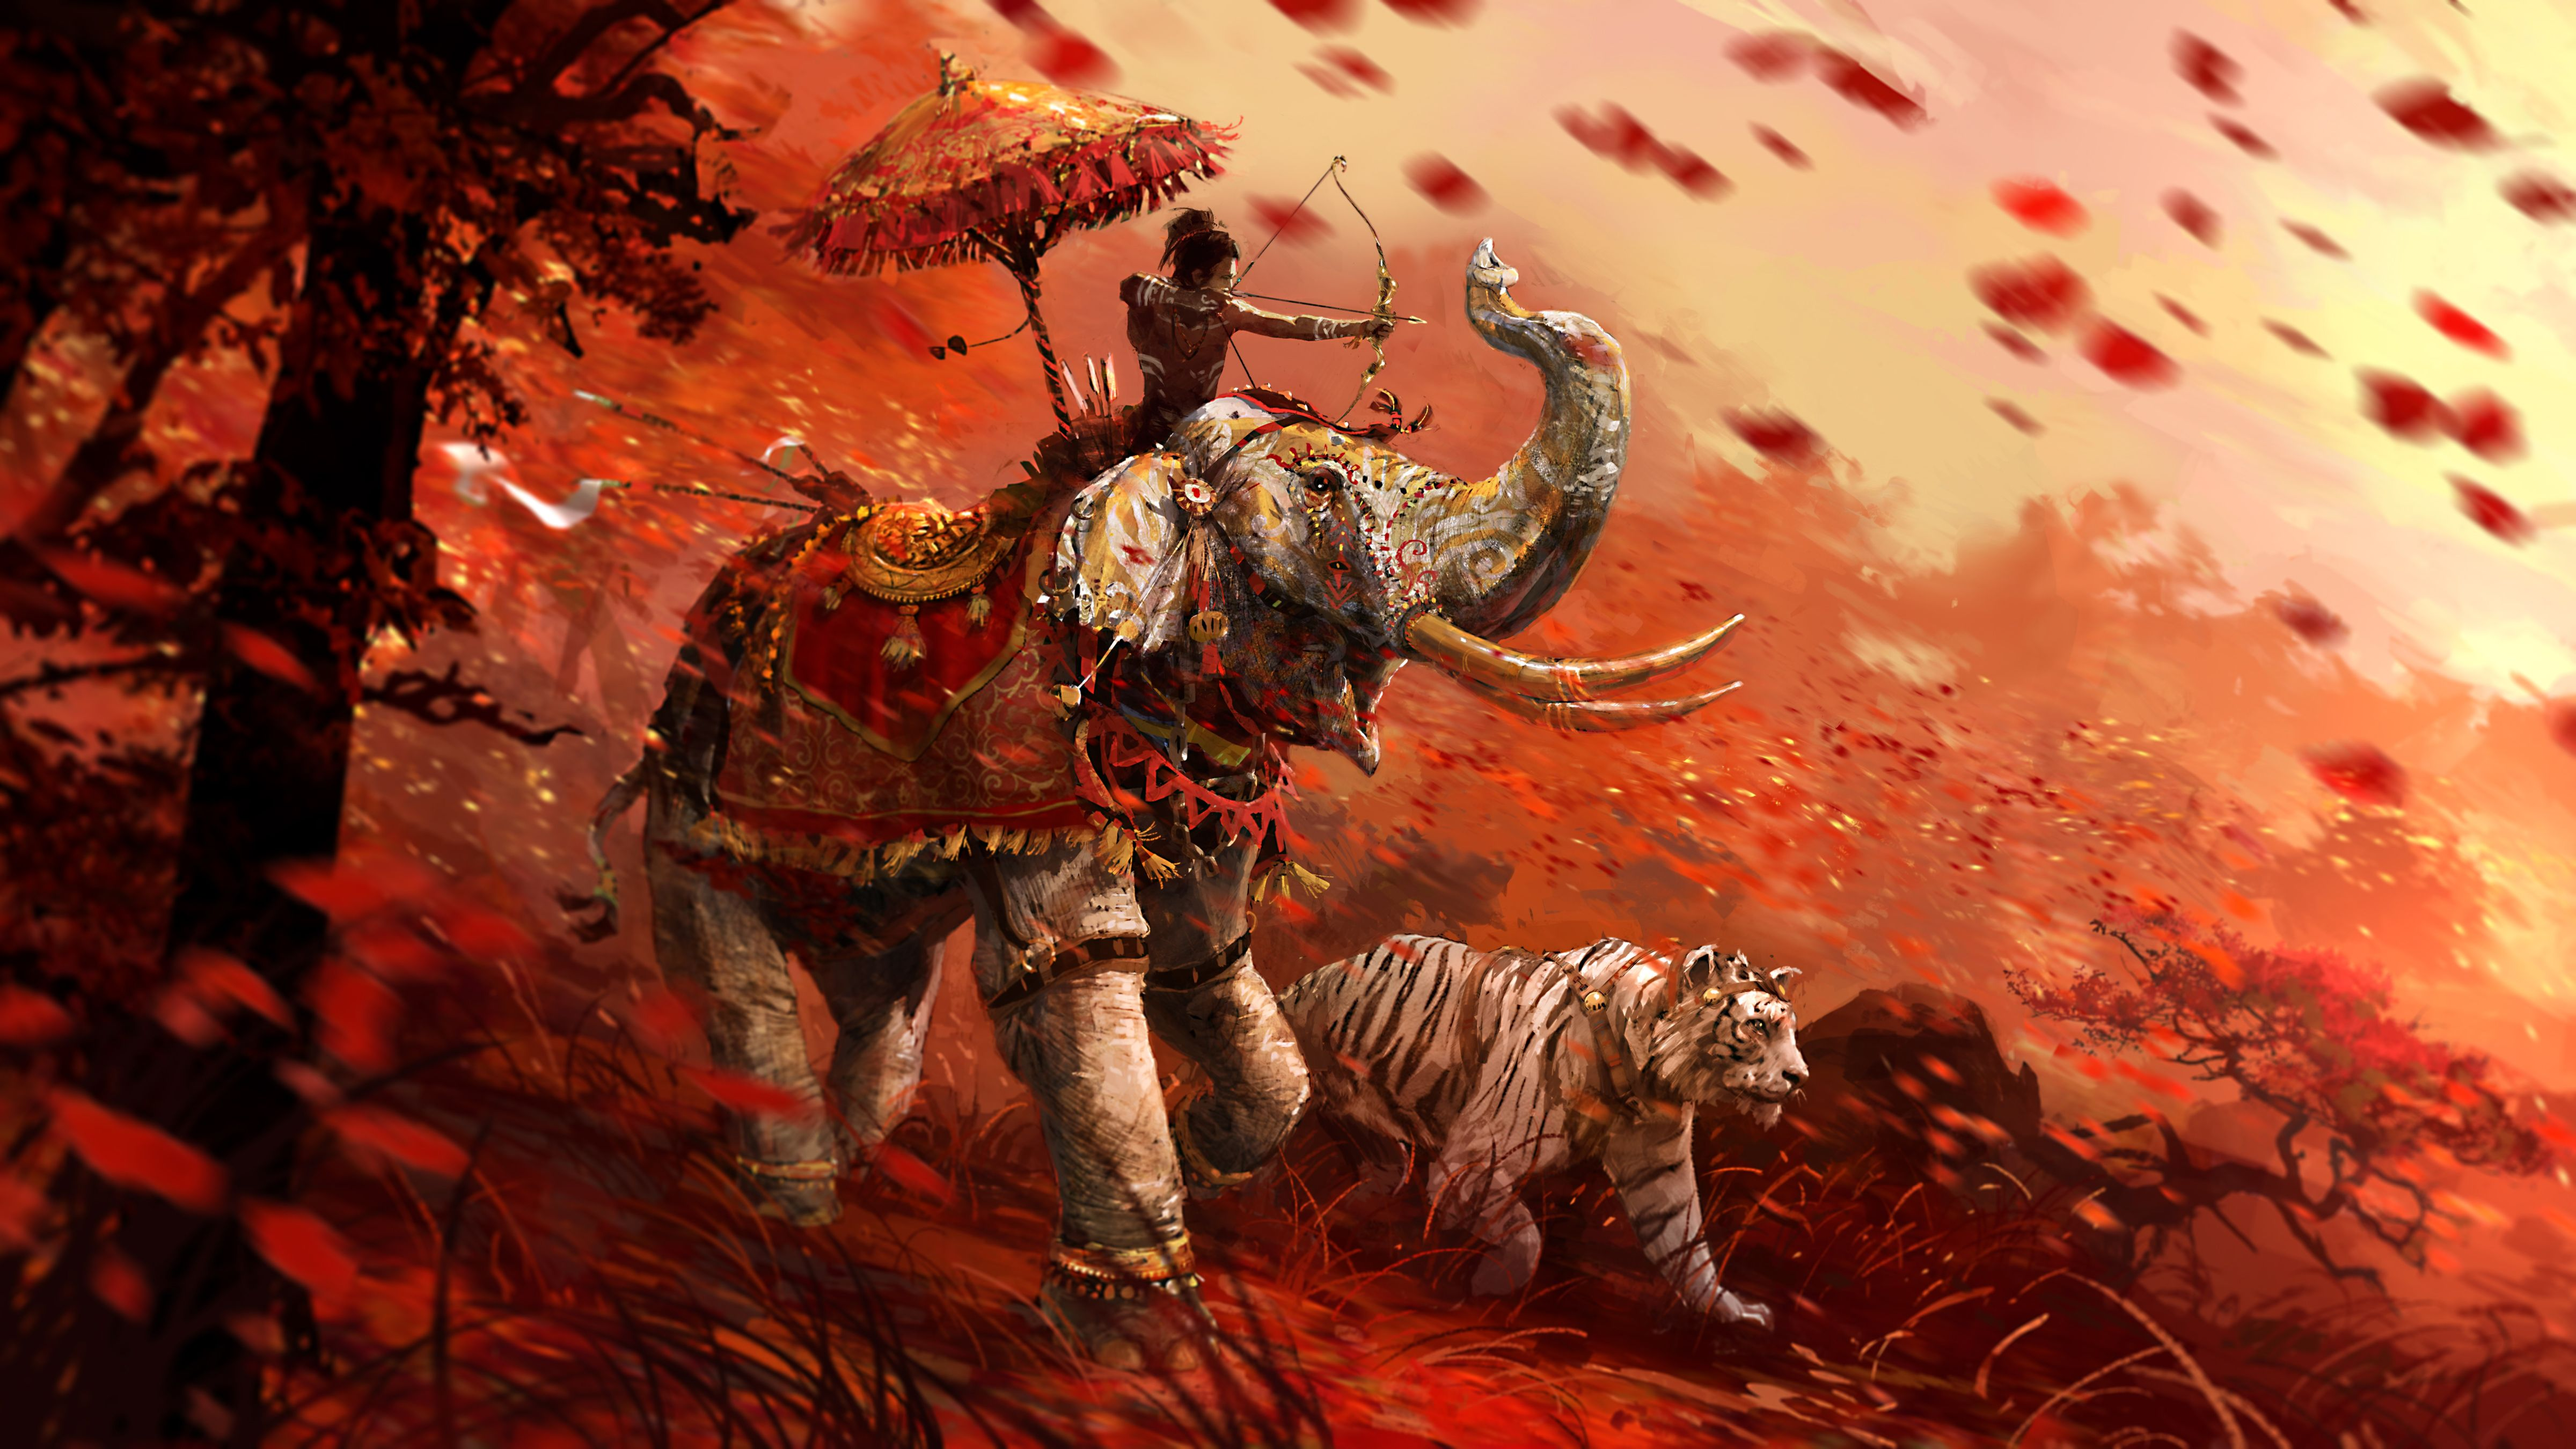 Video Game Far Cry 4 Far Cry Tiger Elephant Wallpaper Fantasy